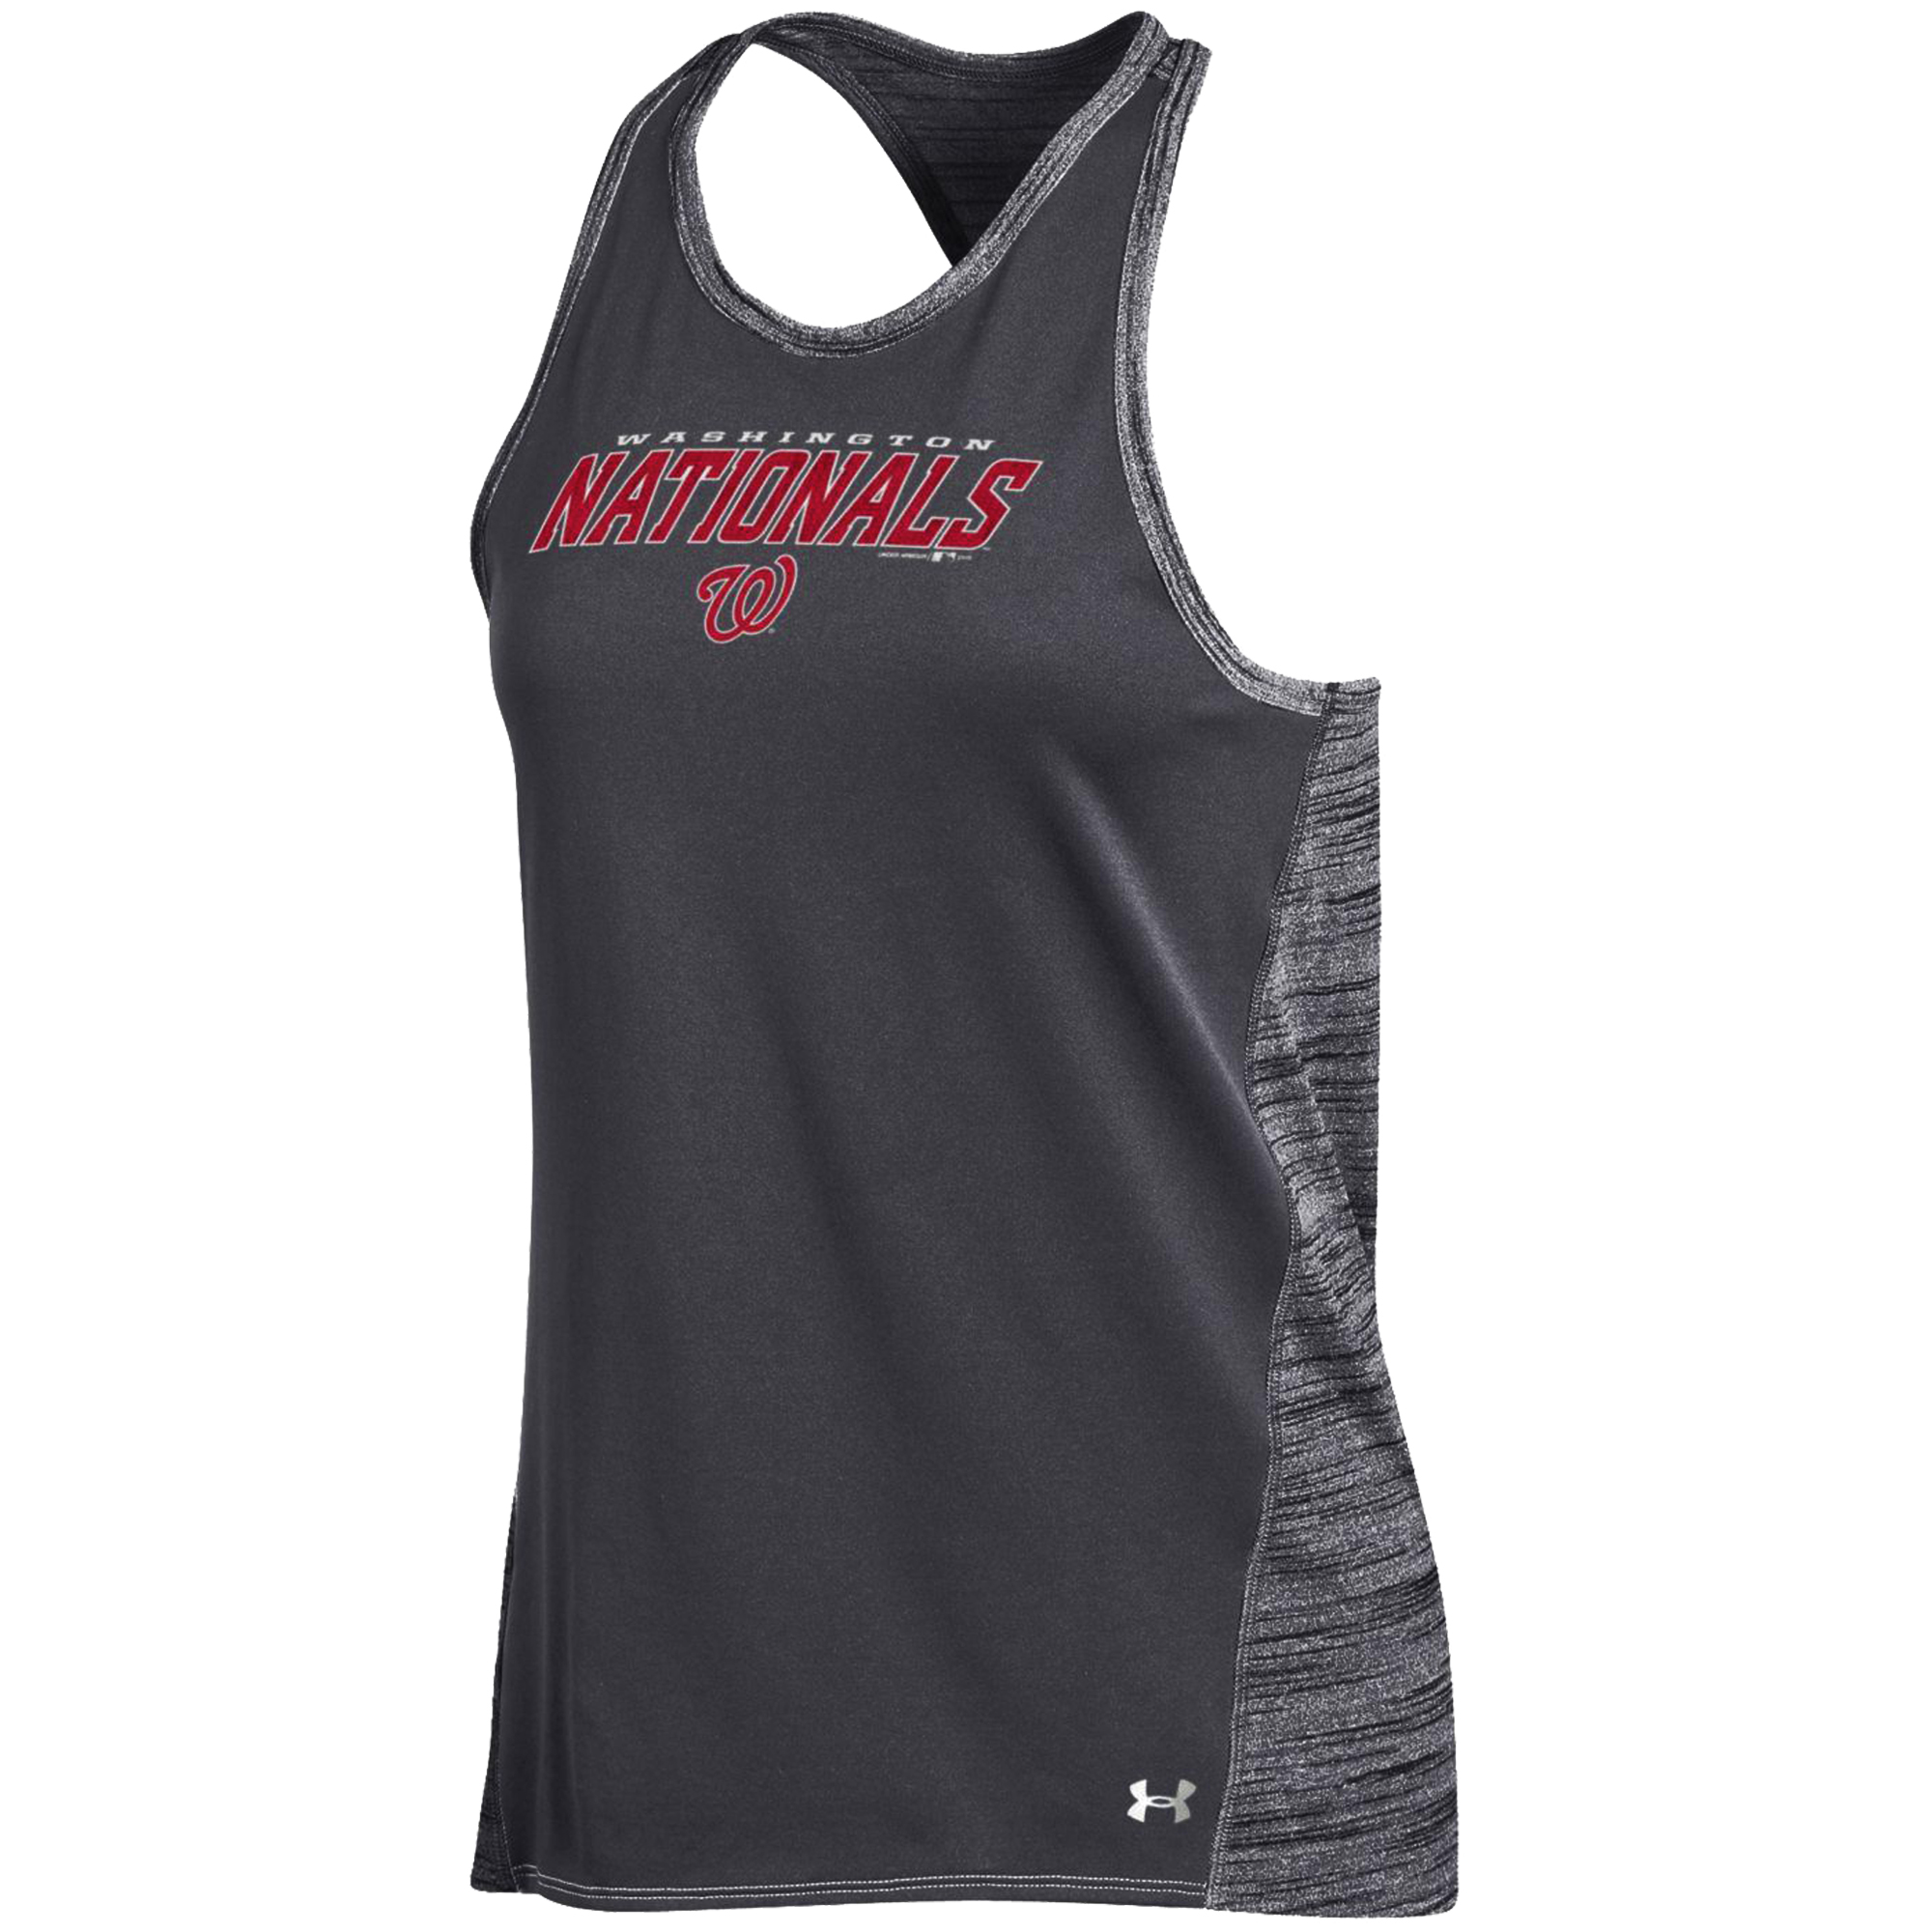 Washington Nationals Under Armour Women's Performance Tank Top - Gray